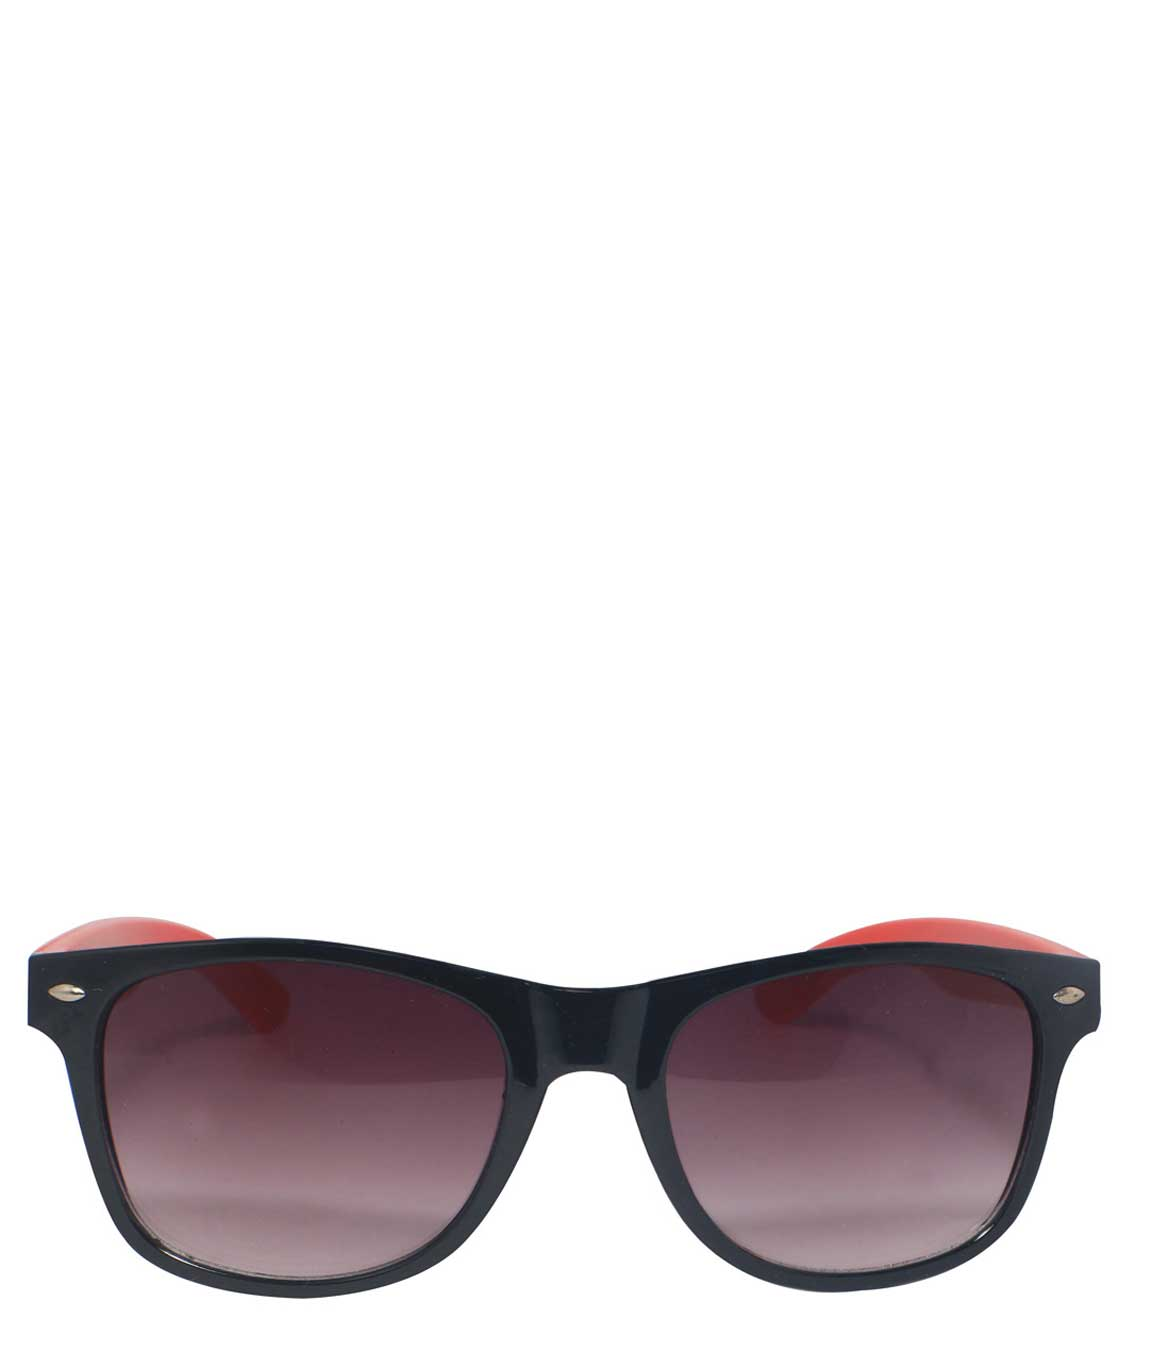 MODERN RED PURPLE WAYFARER